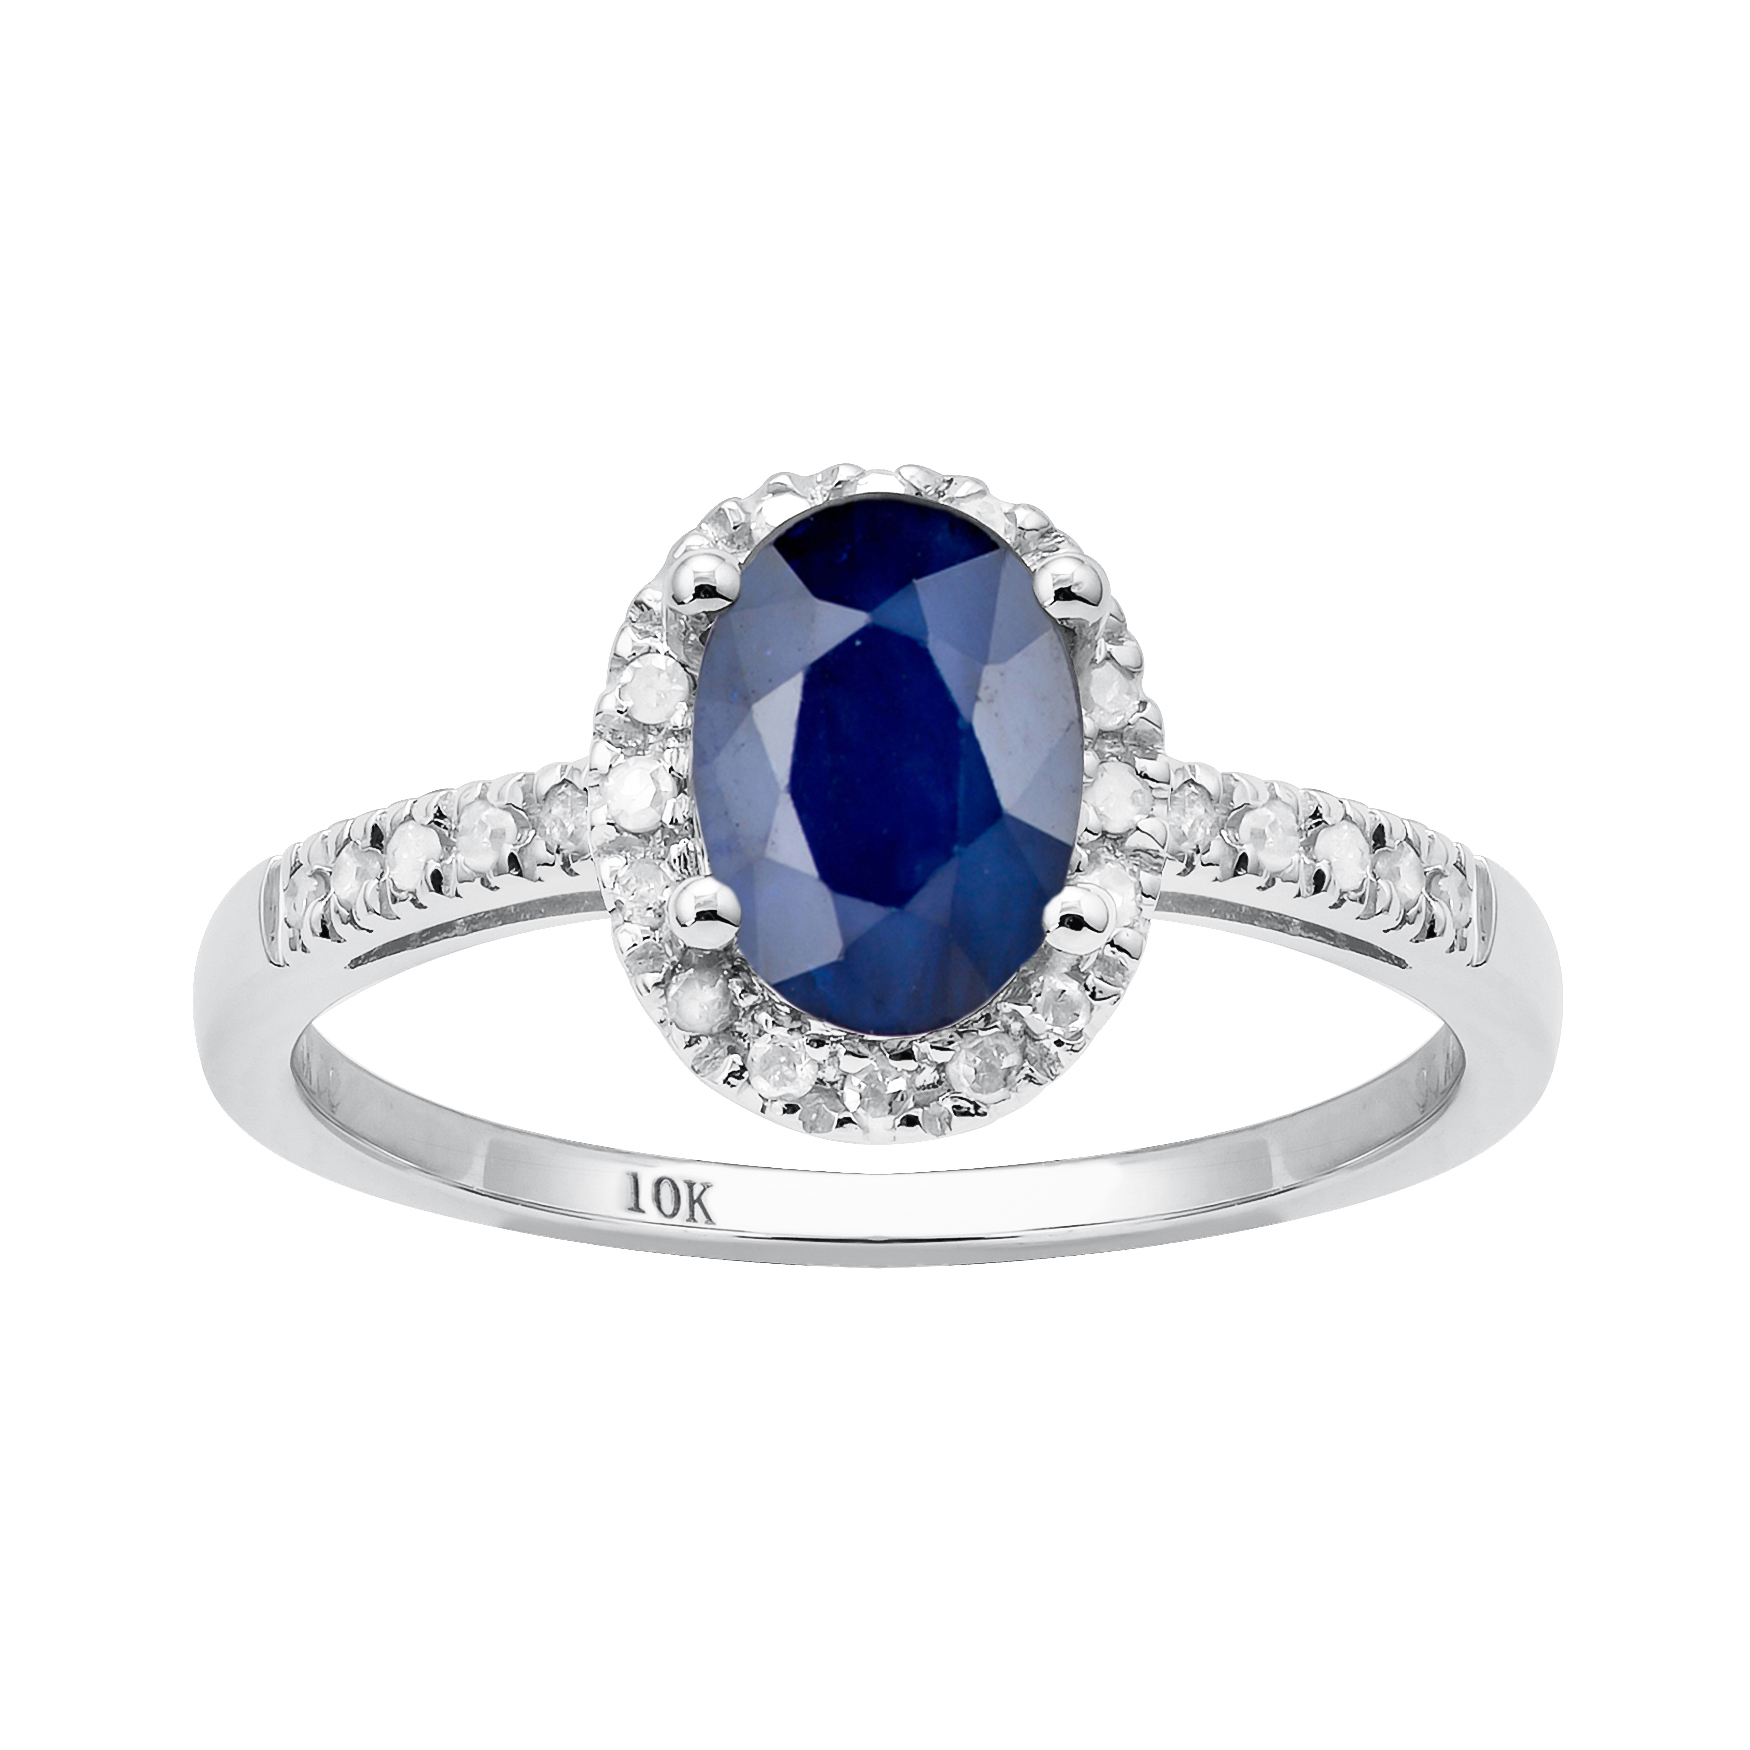 10k white gold genuine blue sapphire and ring 1 8